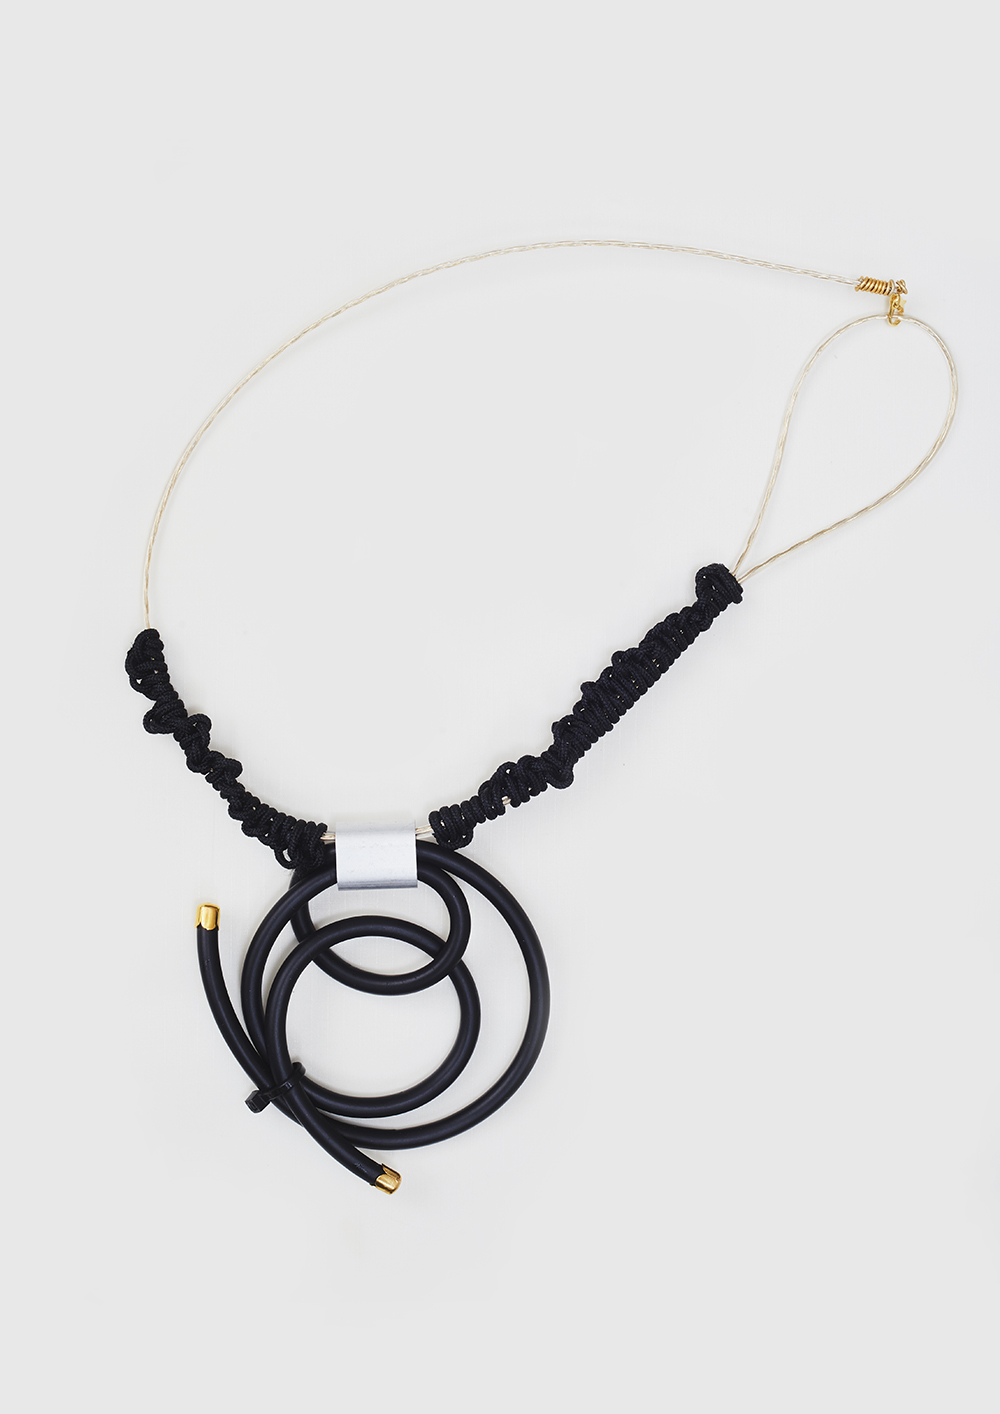 Blackoutlabel necklaces unconditionally%20 48